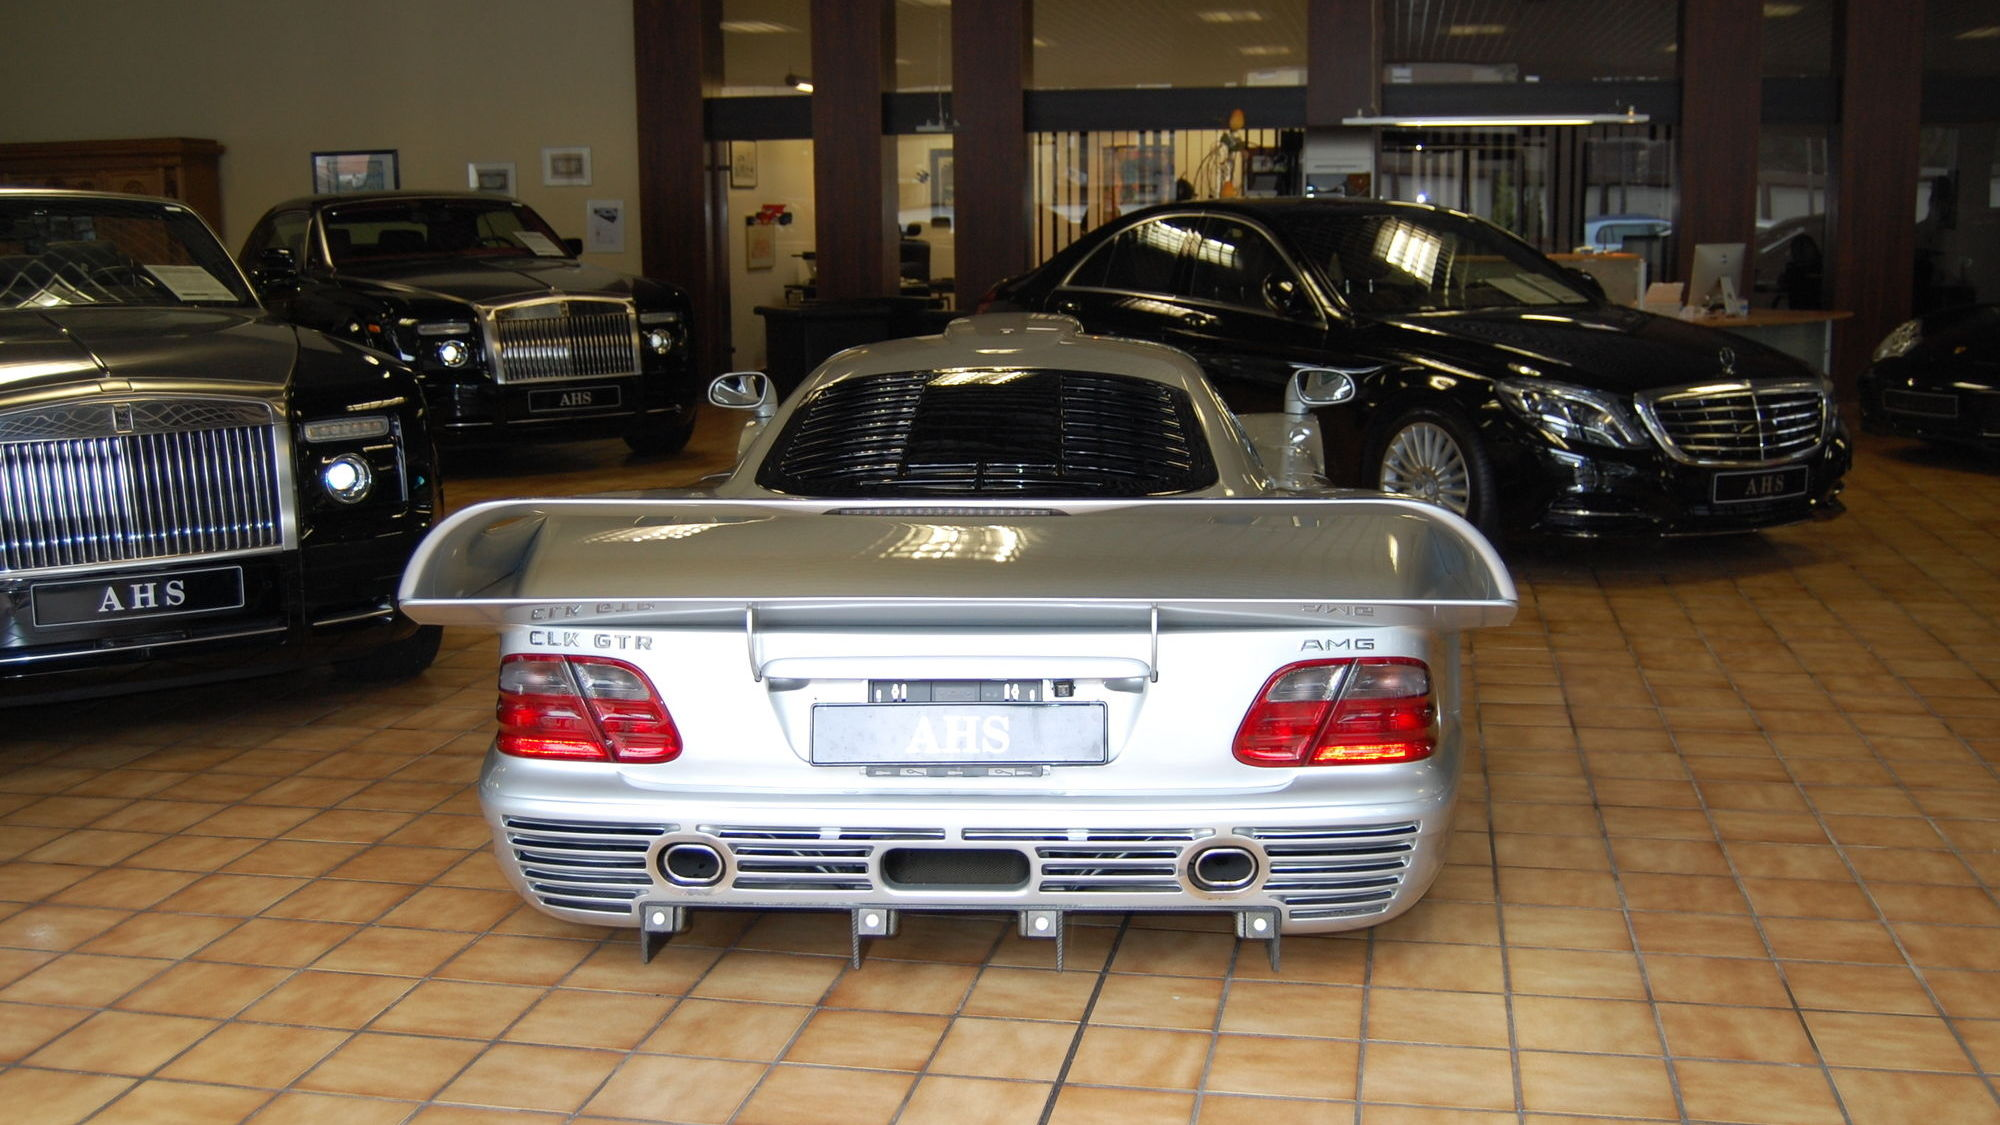 You Can Buy This Mercedes Benz Clk Gtr For 27 Million